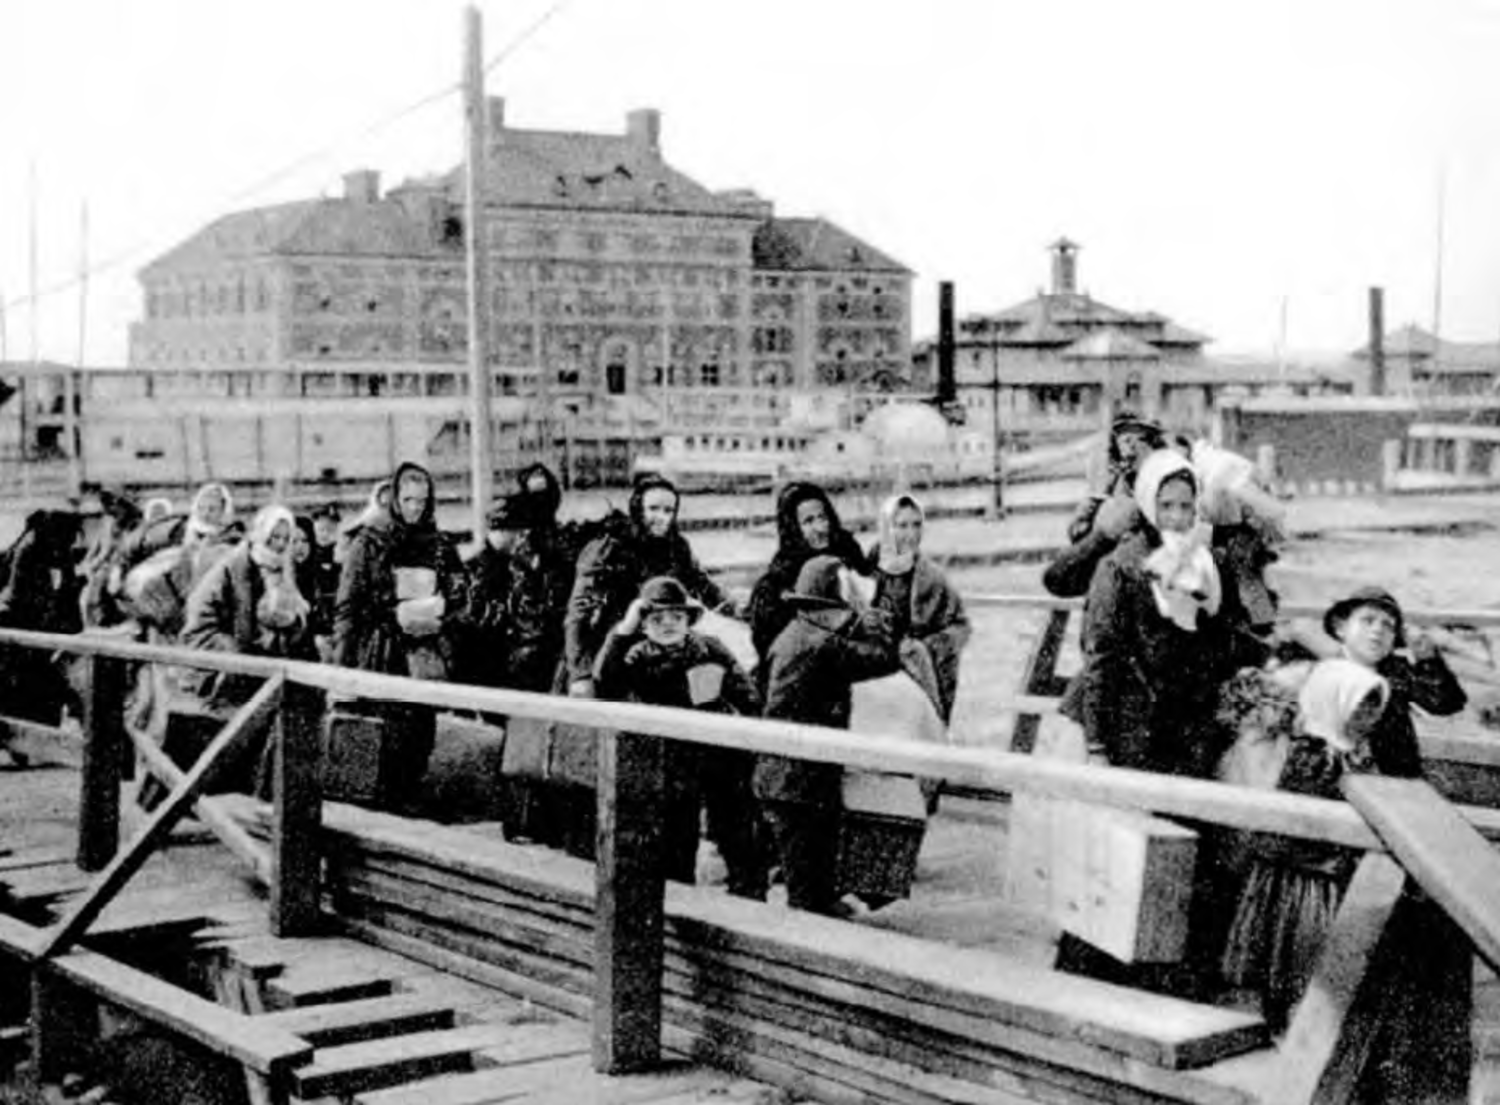 European immigrants arriving at Ellis Island in 1902